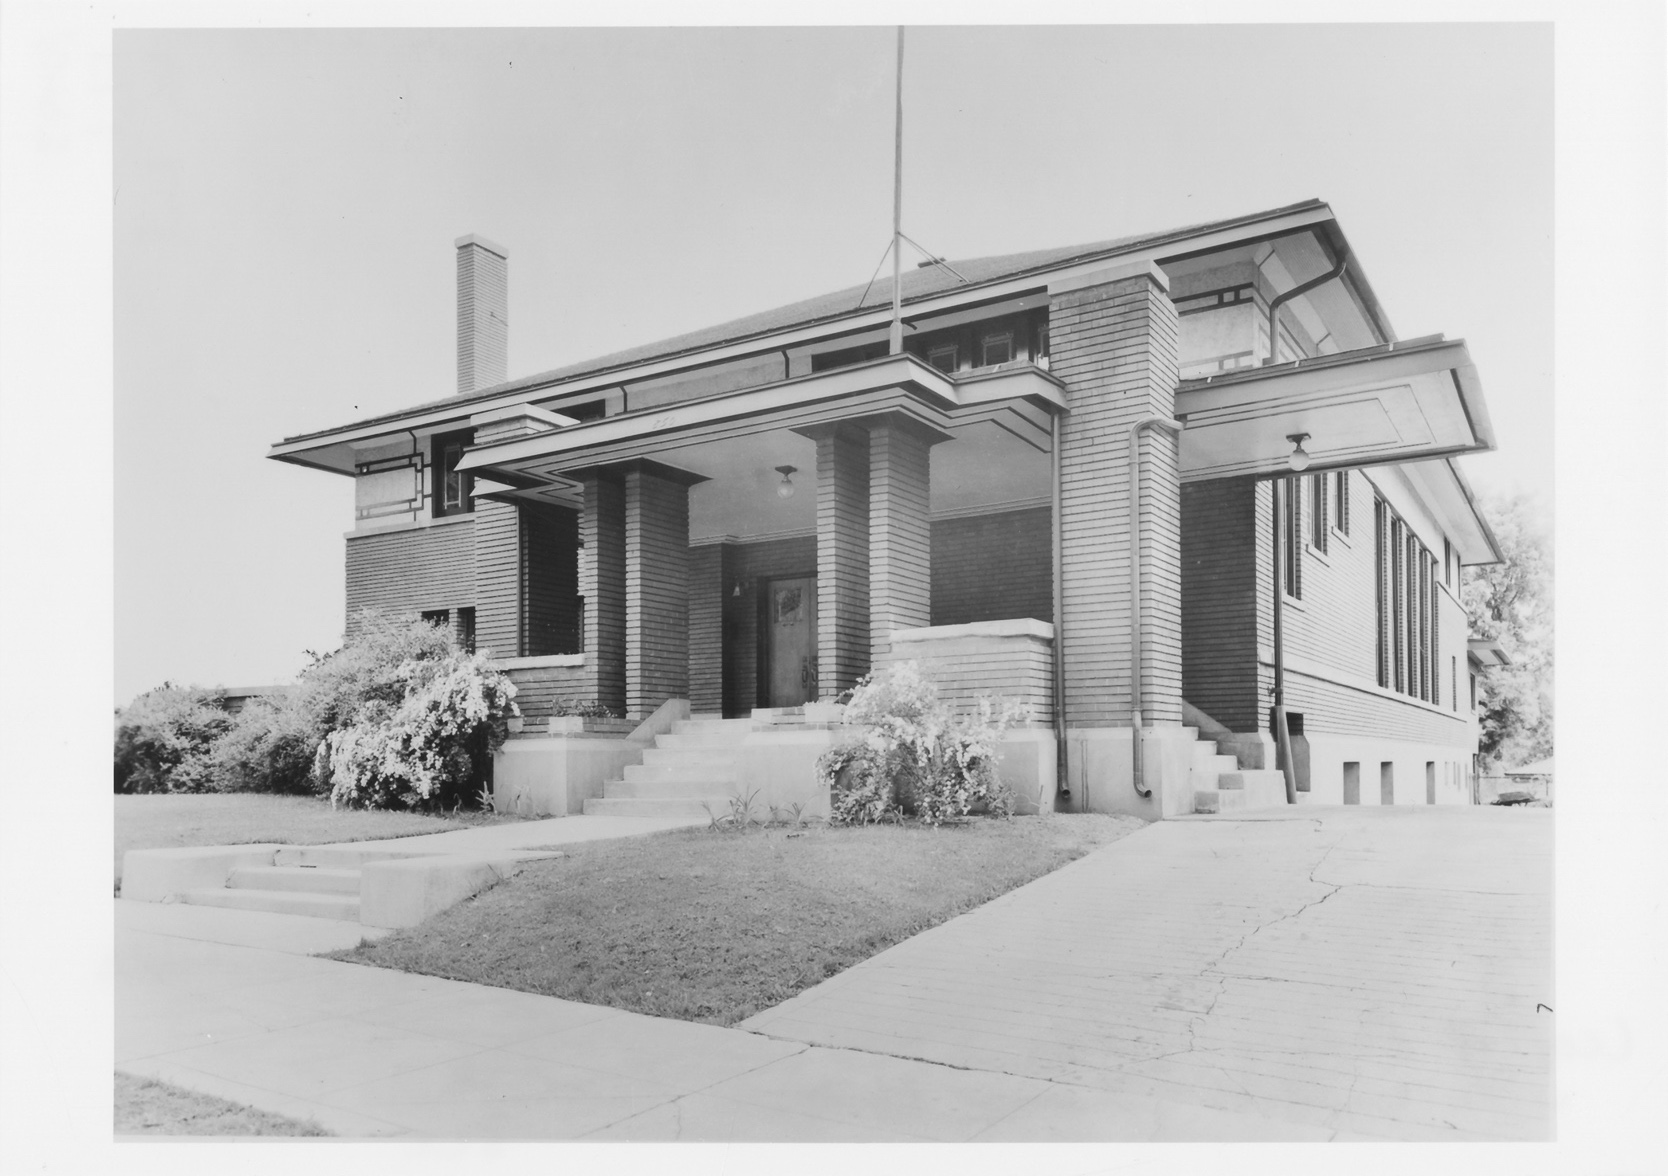 """The House that the Women Built"" at 850 E South Temple, Salt Lake City. Constructed from 1911-1913. Image courtesy of the Special Collections Dept, J Willard Marriott Library, University of Utah."